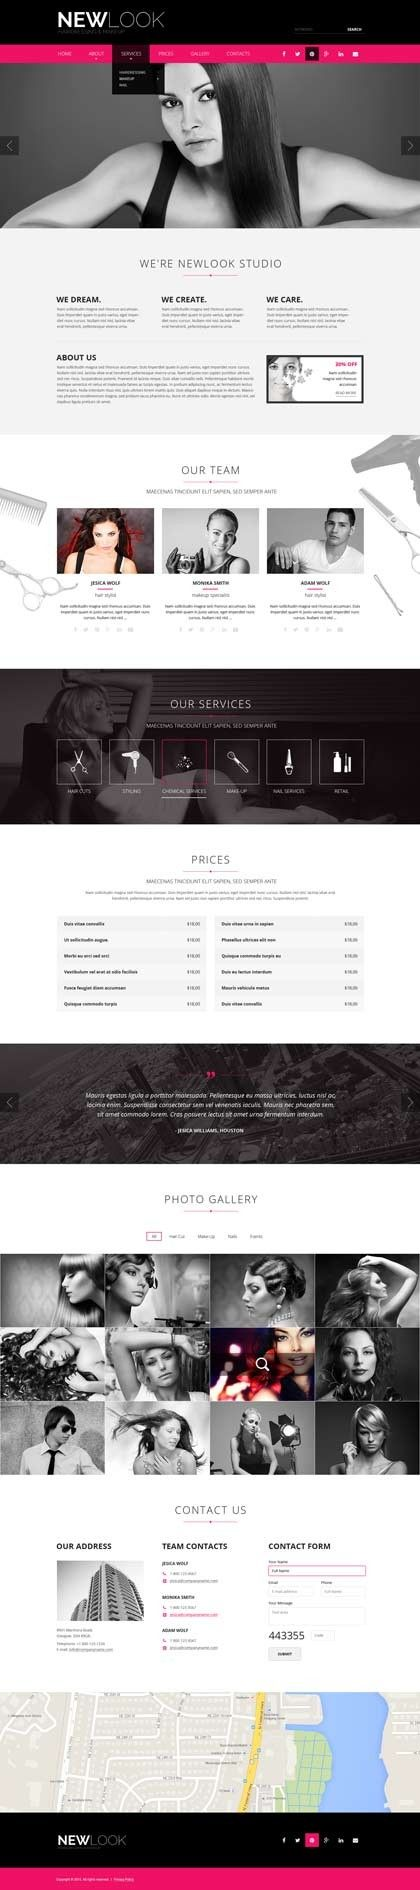 16 best Free Web Templates images on Pinterest | Free html website ...